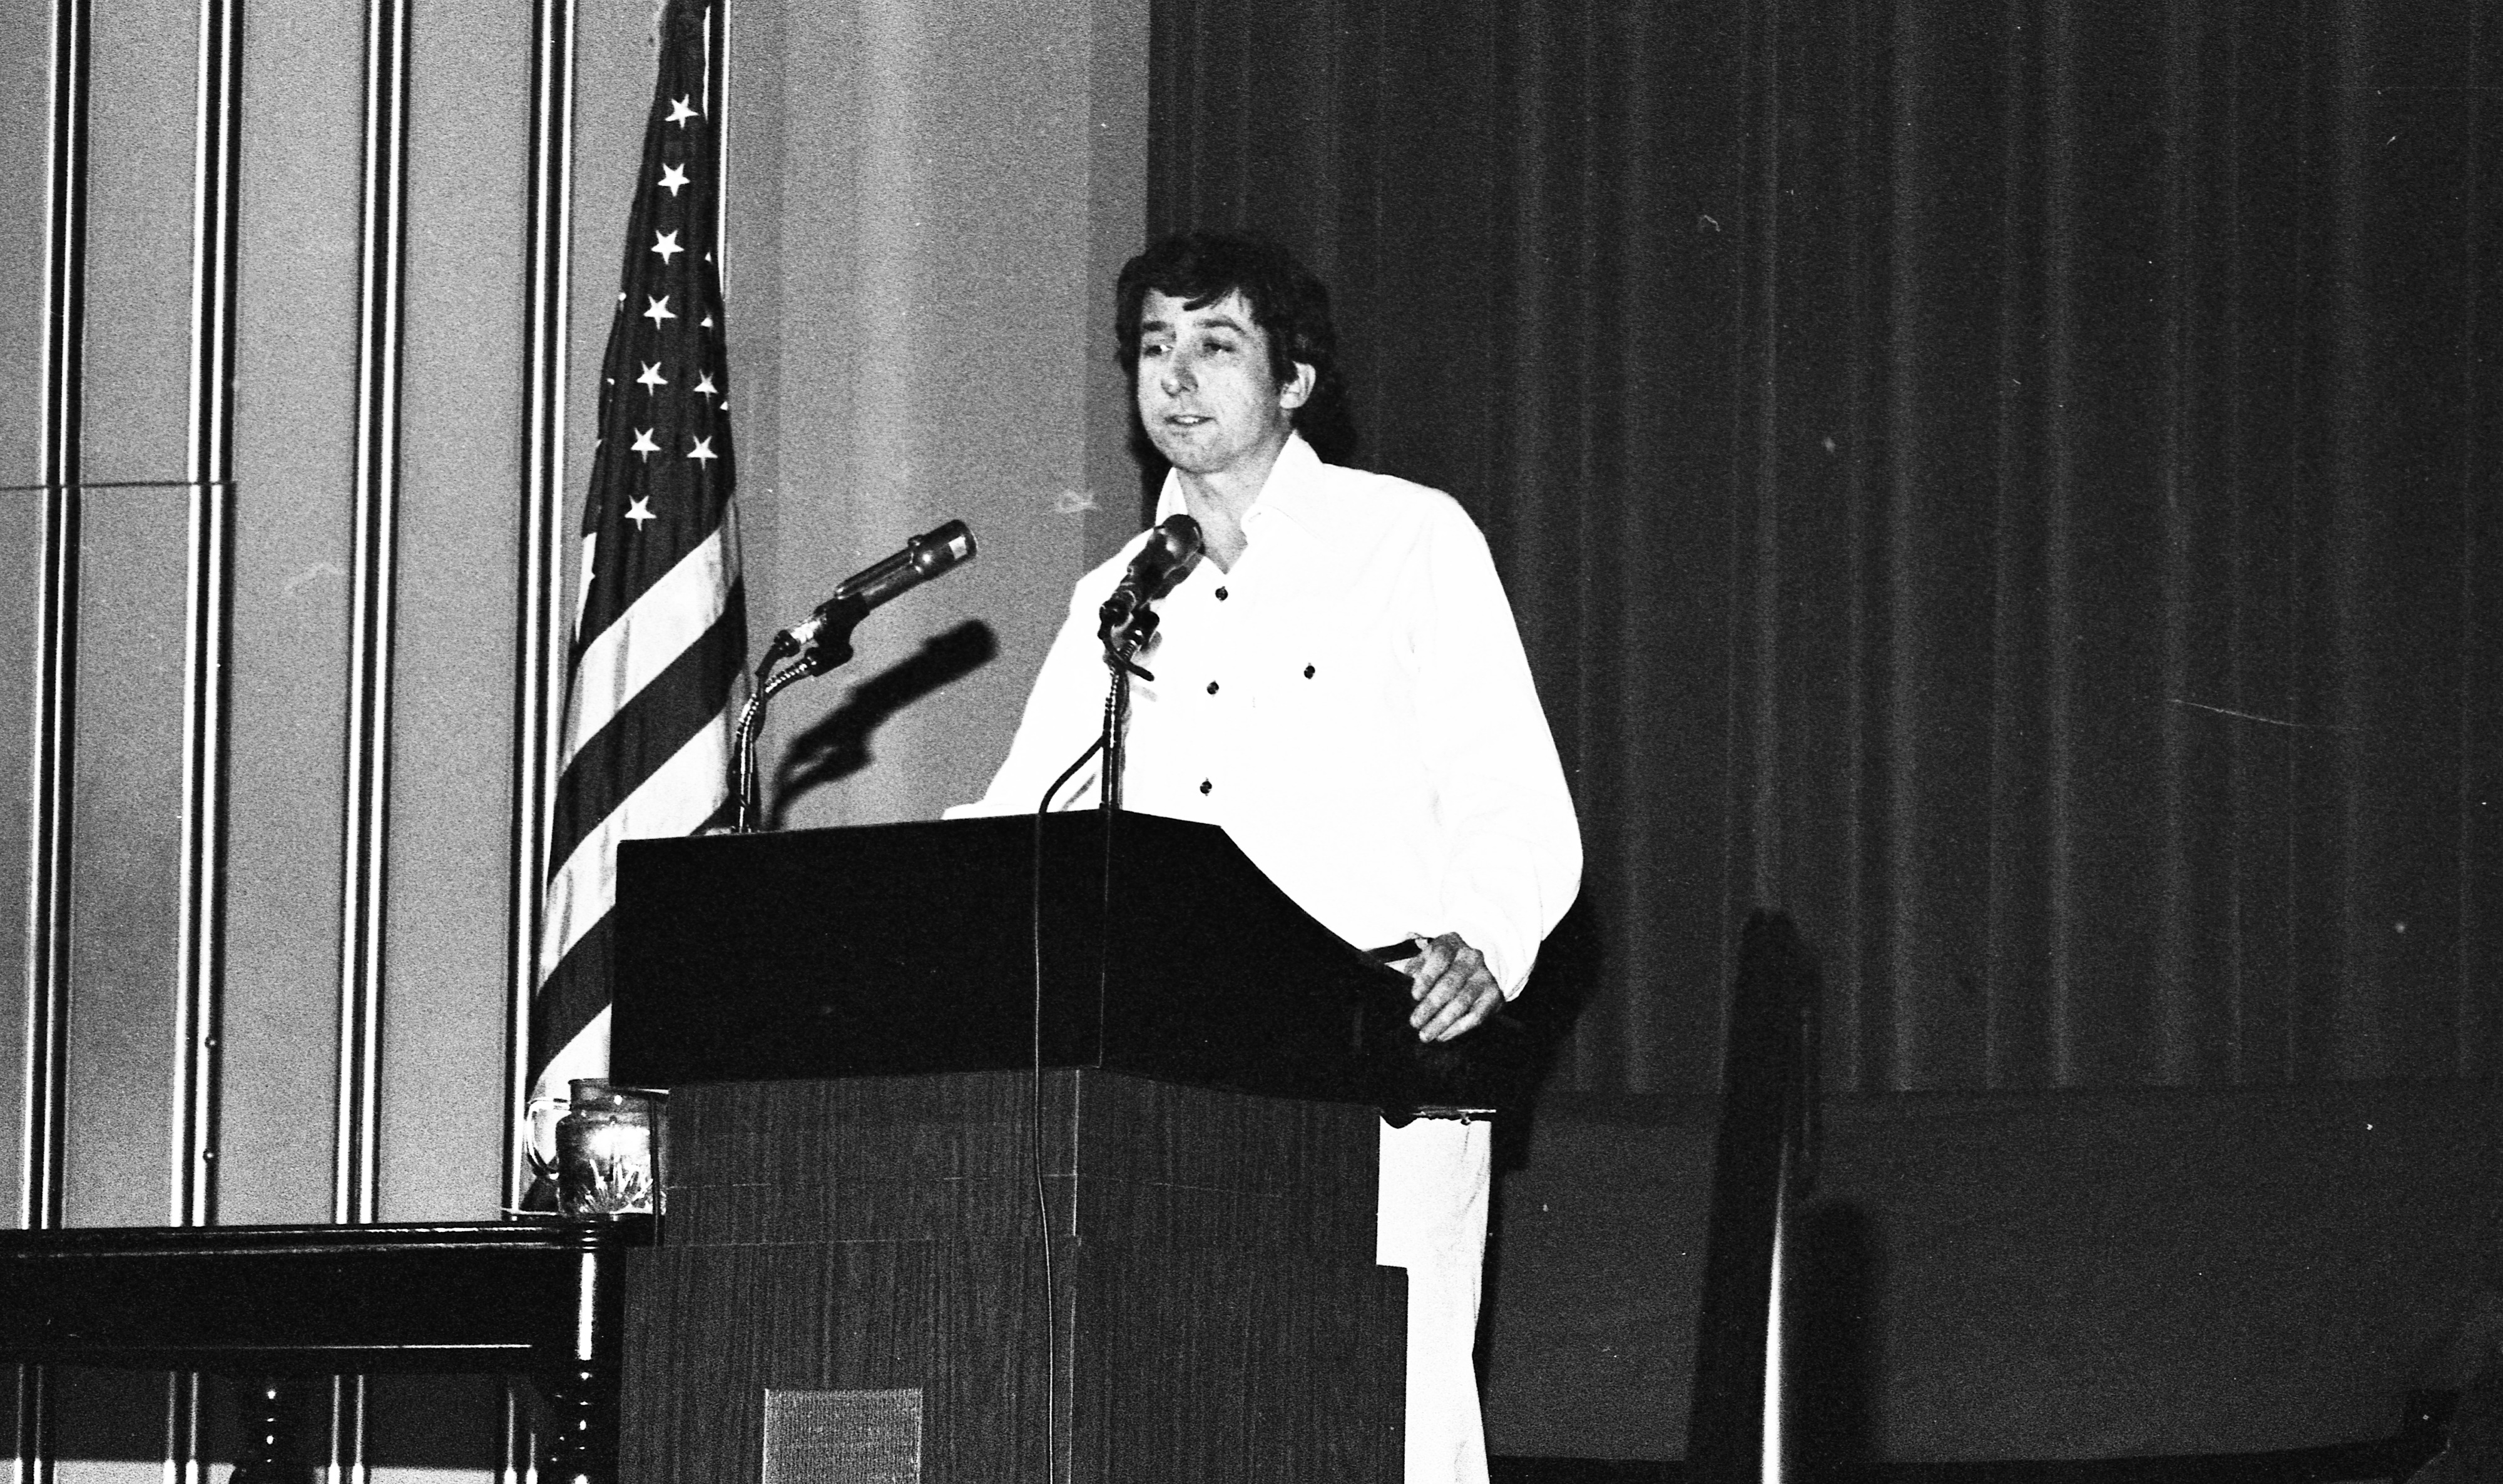 Tom Hayden Speaks at Rackham Auditorium, January 1977 image